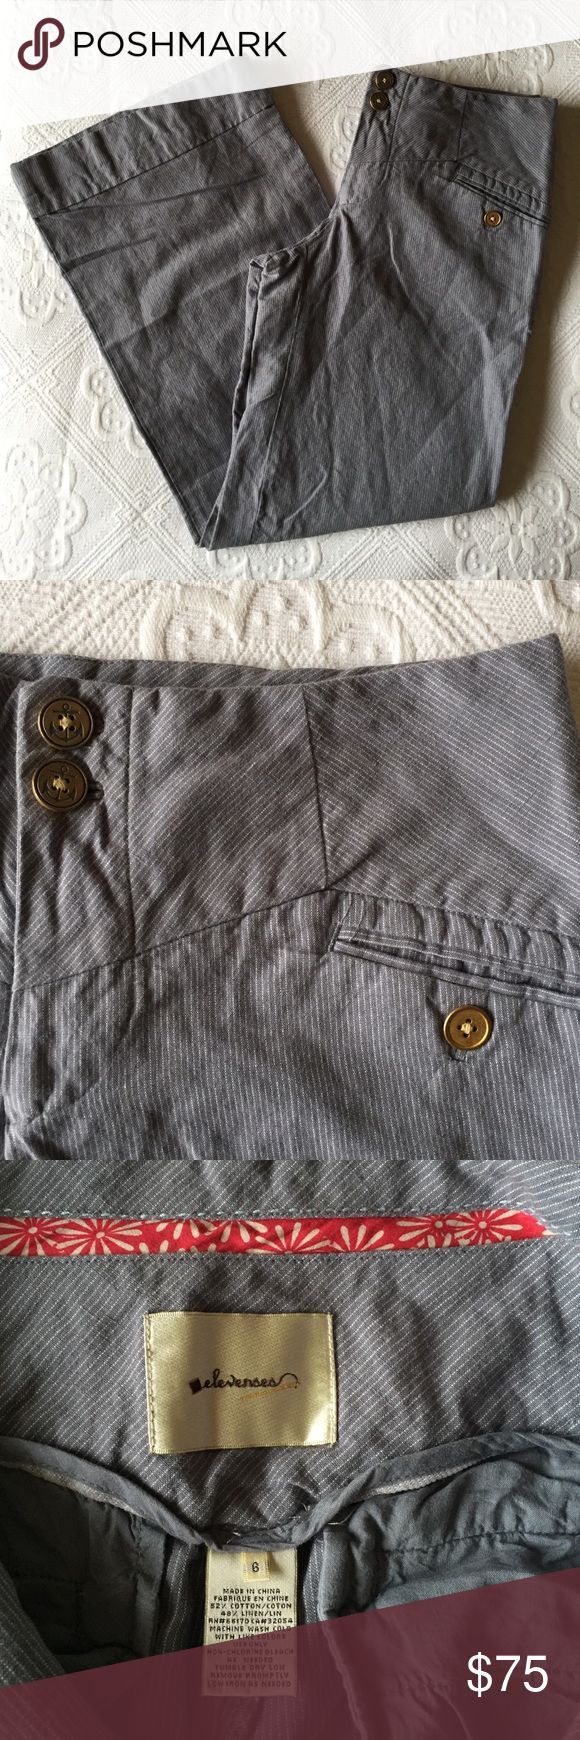 Anthropologie - Elevenses Nautical Trousers Anthropologie - Elevenses Nautical Trousers / Gorgeous detail with anchor buttons.  Needs to be steamed.  Color is a muted bluish-gray. Anthropologie Pants Trousers